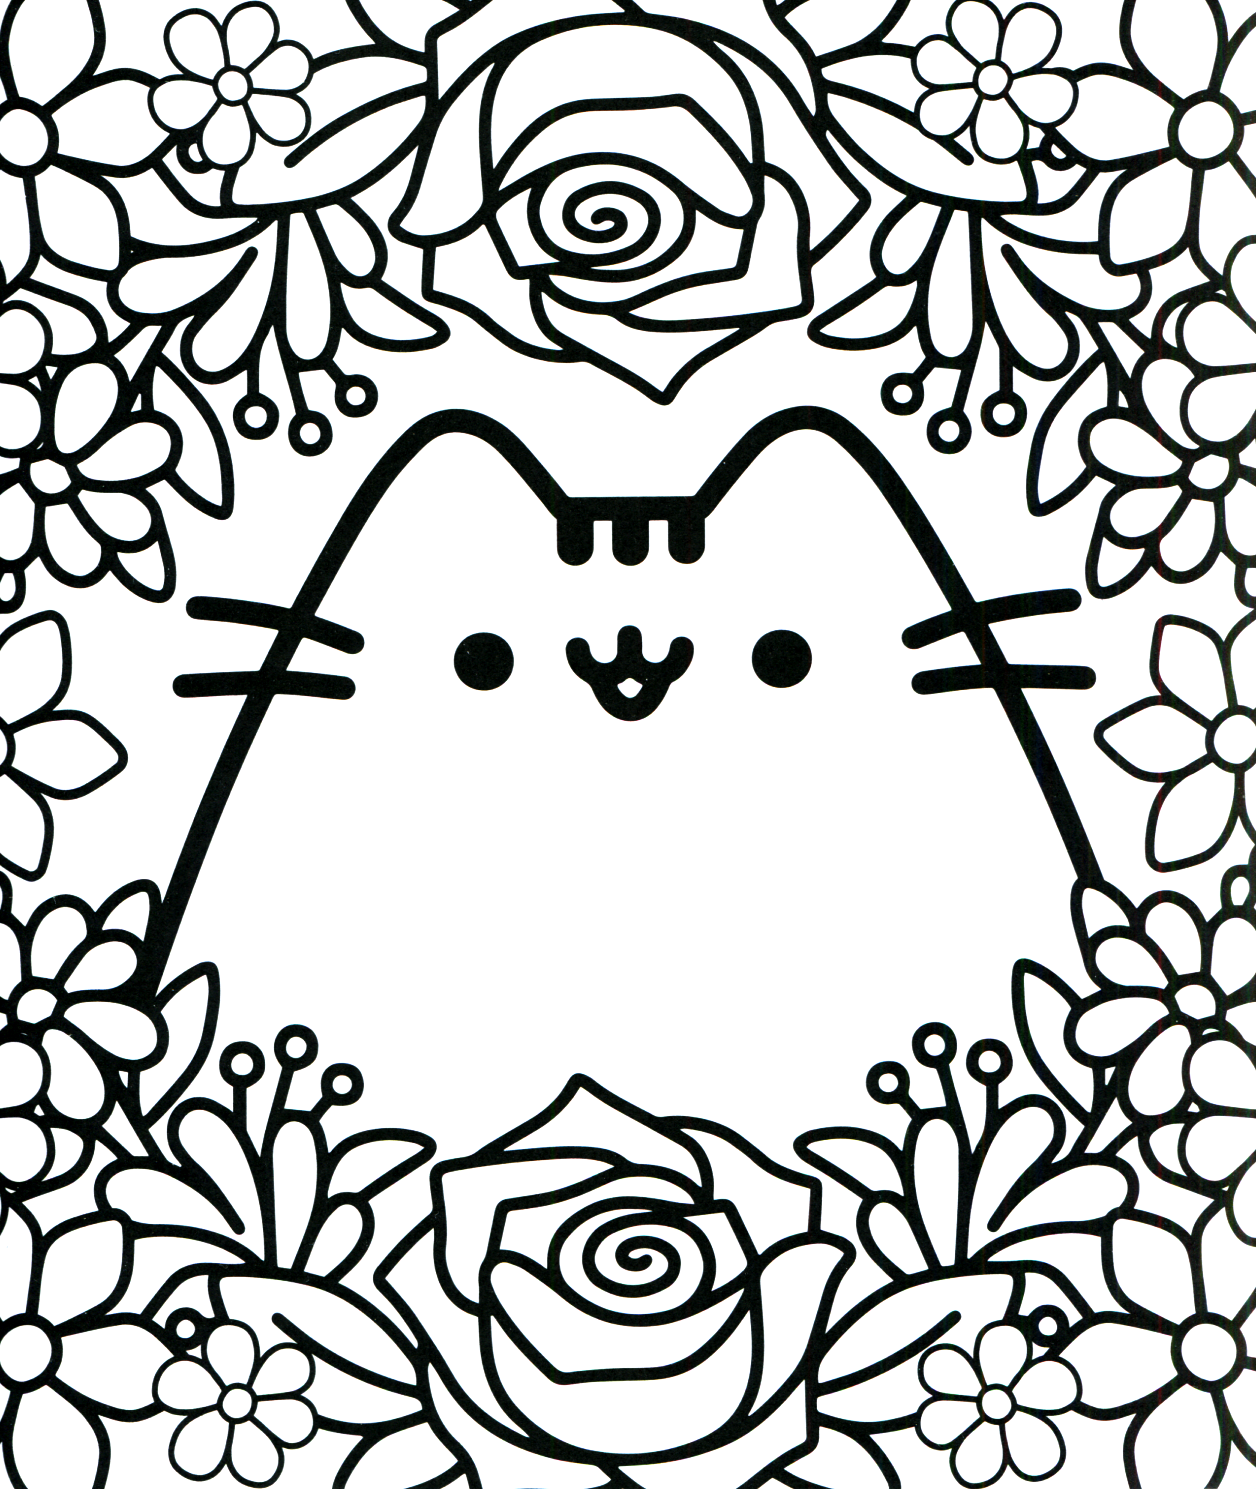 Pusheen Coloring Book Pusheen Pusheen the Cat Pusheen